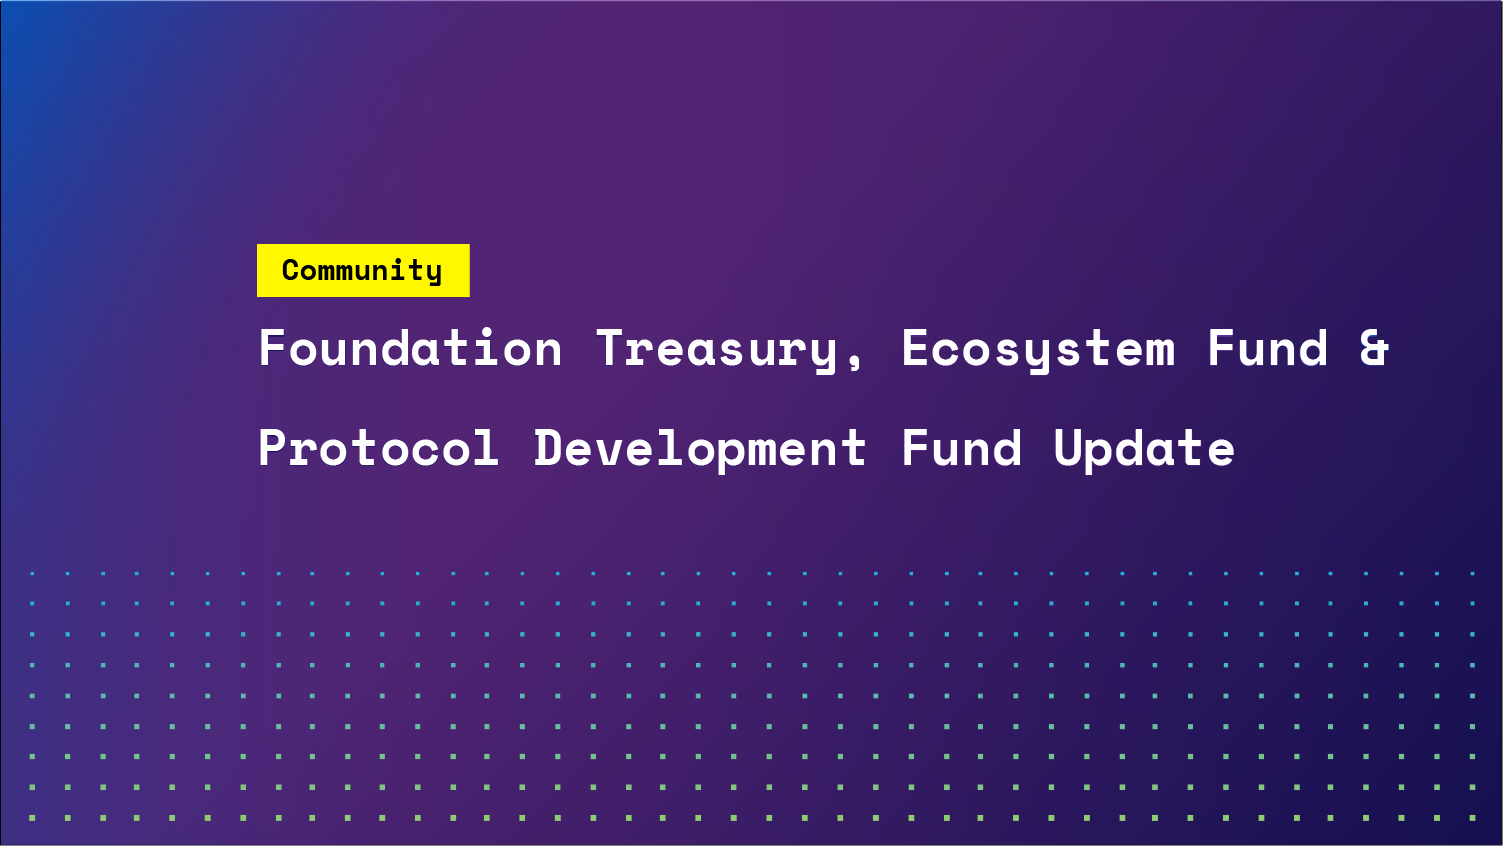 Foundation Treasury, Ecosystem Fund, and Protocol Development Fund Update